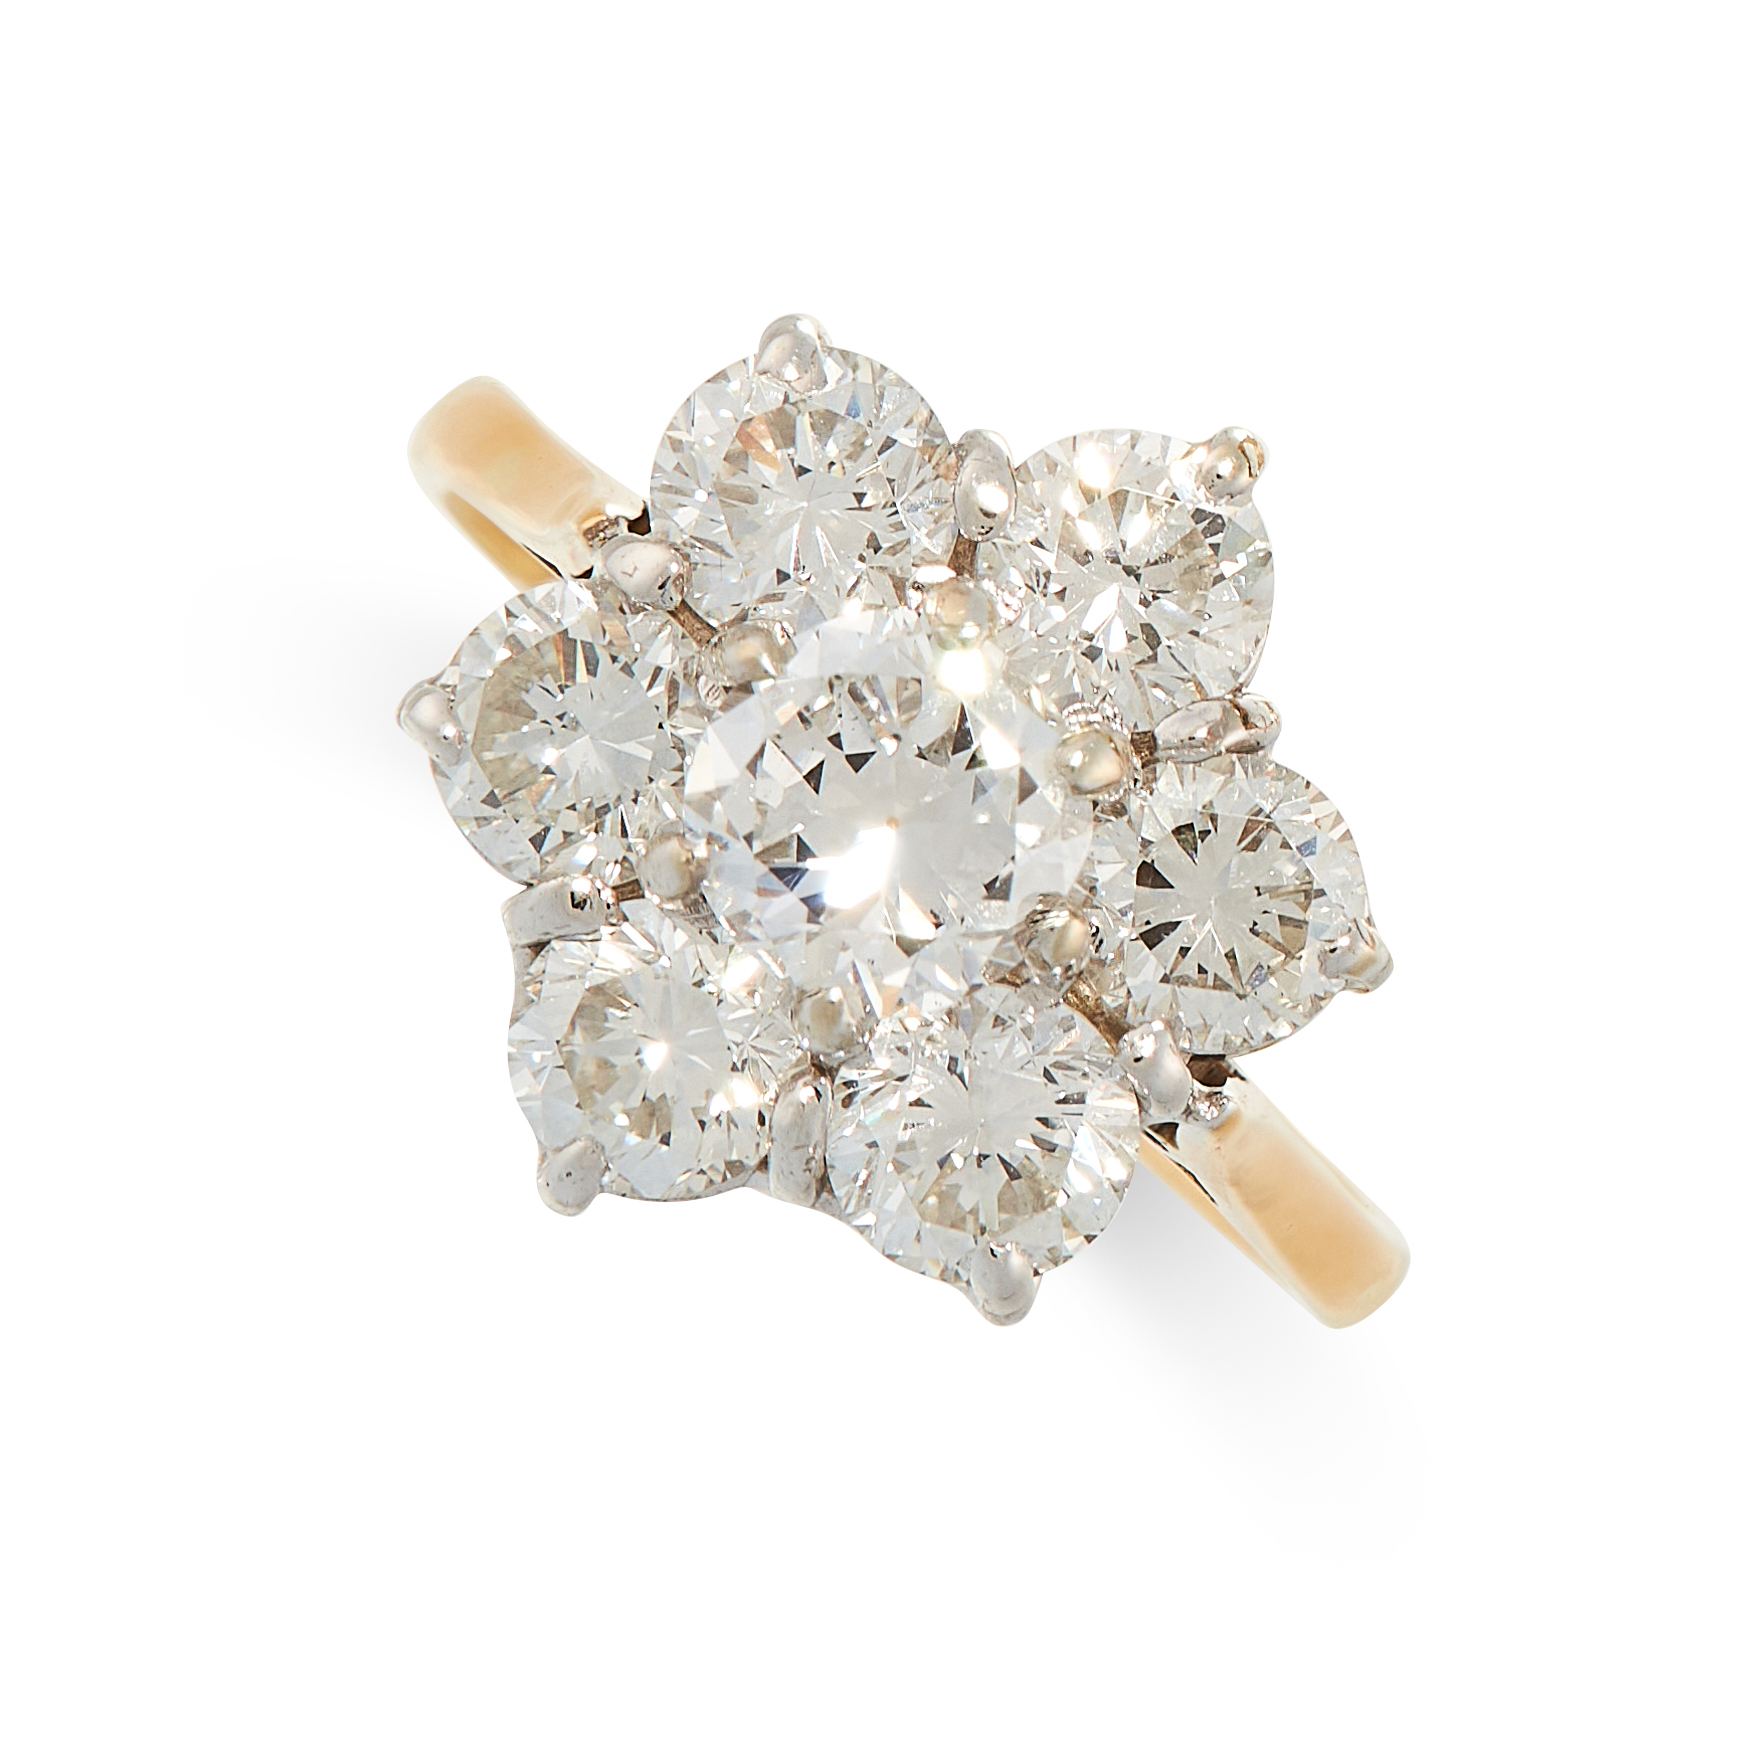 A DIAMOND CLUSTER RING in 18ct yellow gold, set with a principal round cut diamond of 0.61 carats,